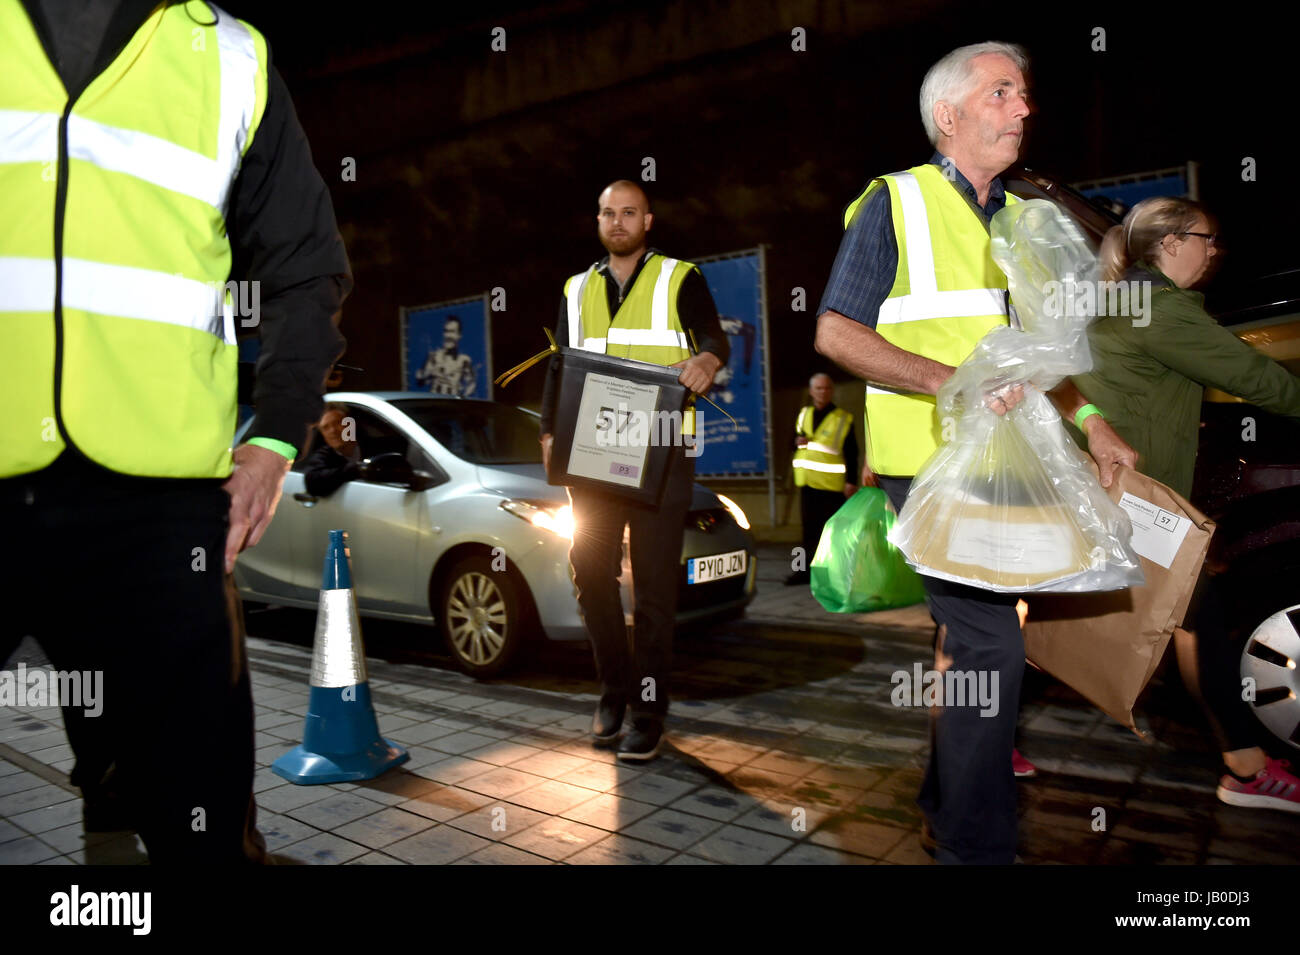 Brighton, UK. 8th June, 2017. The ballot boxes start to arrive for the General Election counts for Brighton Pavilion, - Stock Image